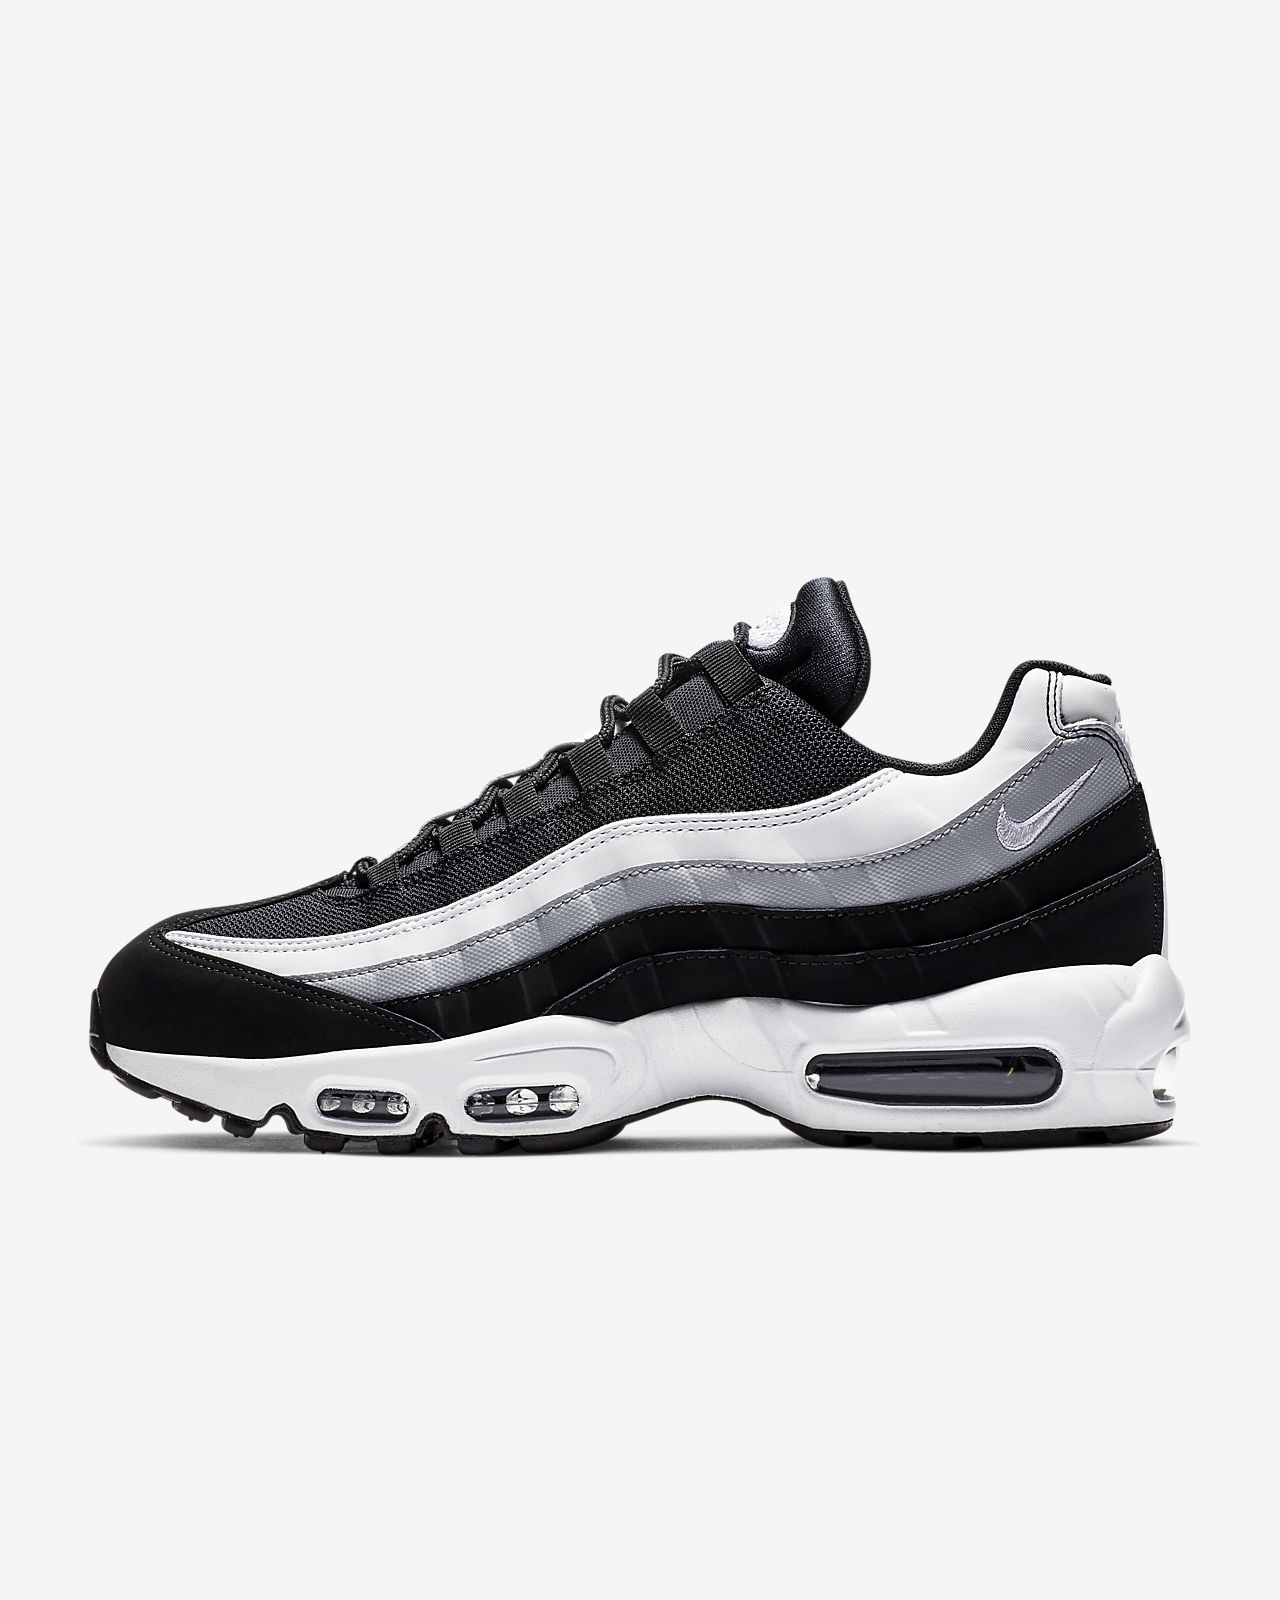 innovative design b165f 2e1d0 Men s Shoe. Nike Air Max 95 Essential